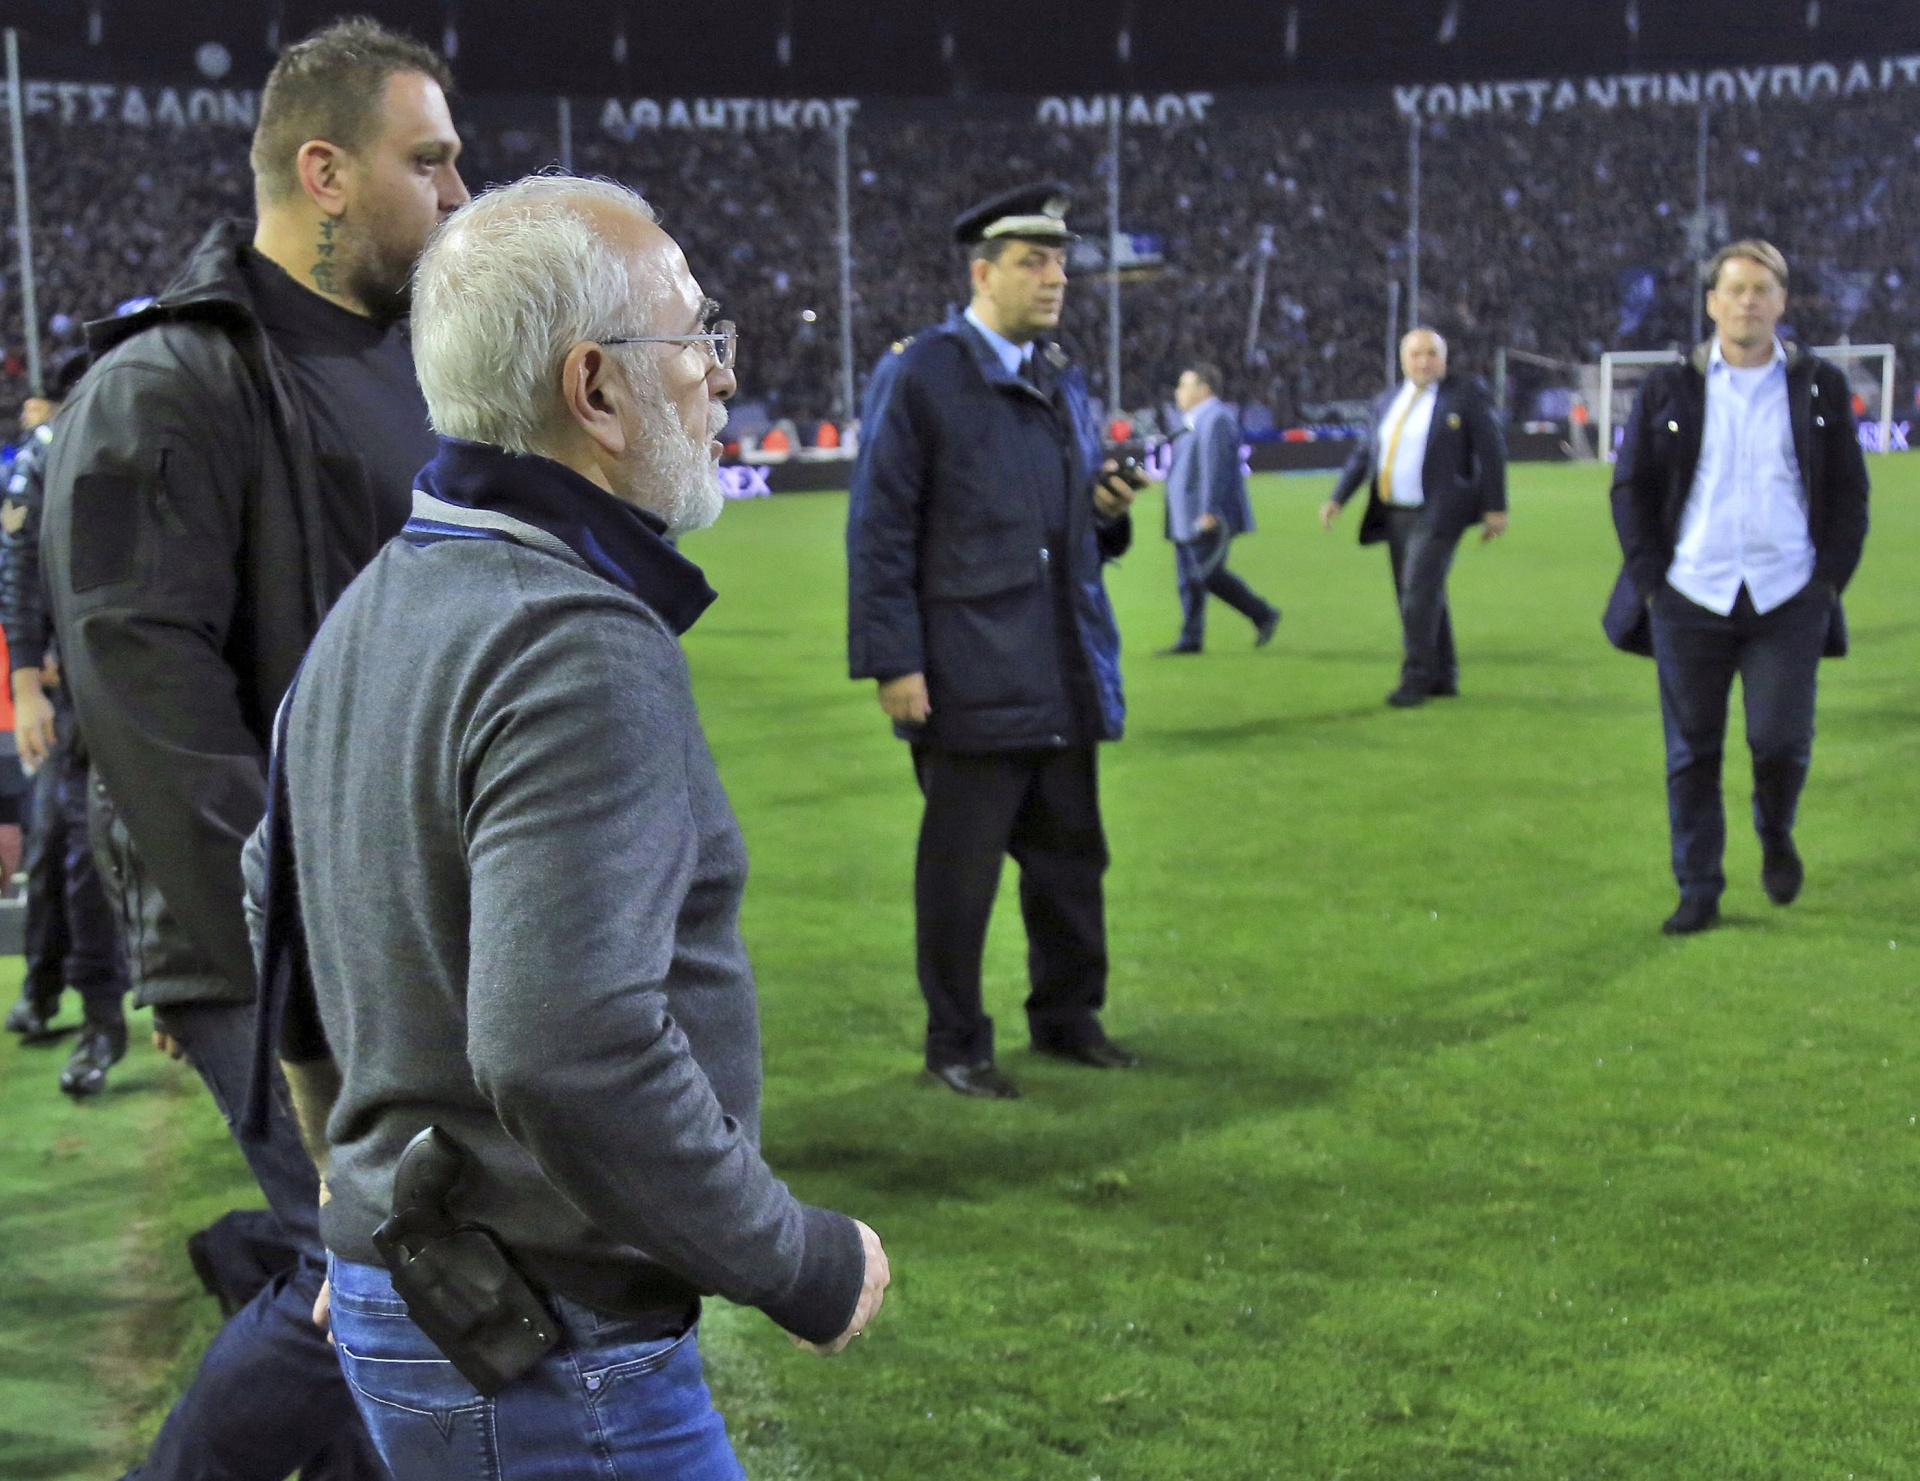 PAOK owner, businessman Ivan Savvidis invades, the pitch with a gun strapped to his hip